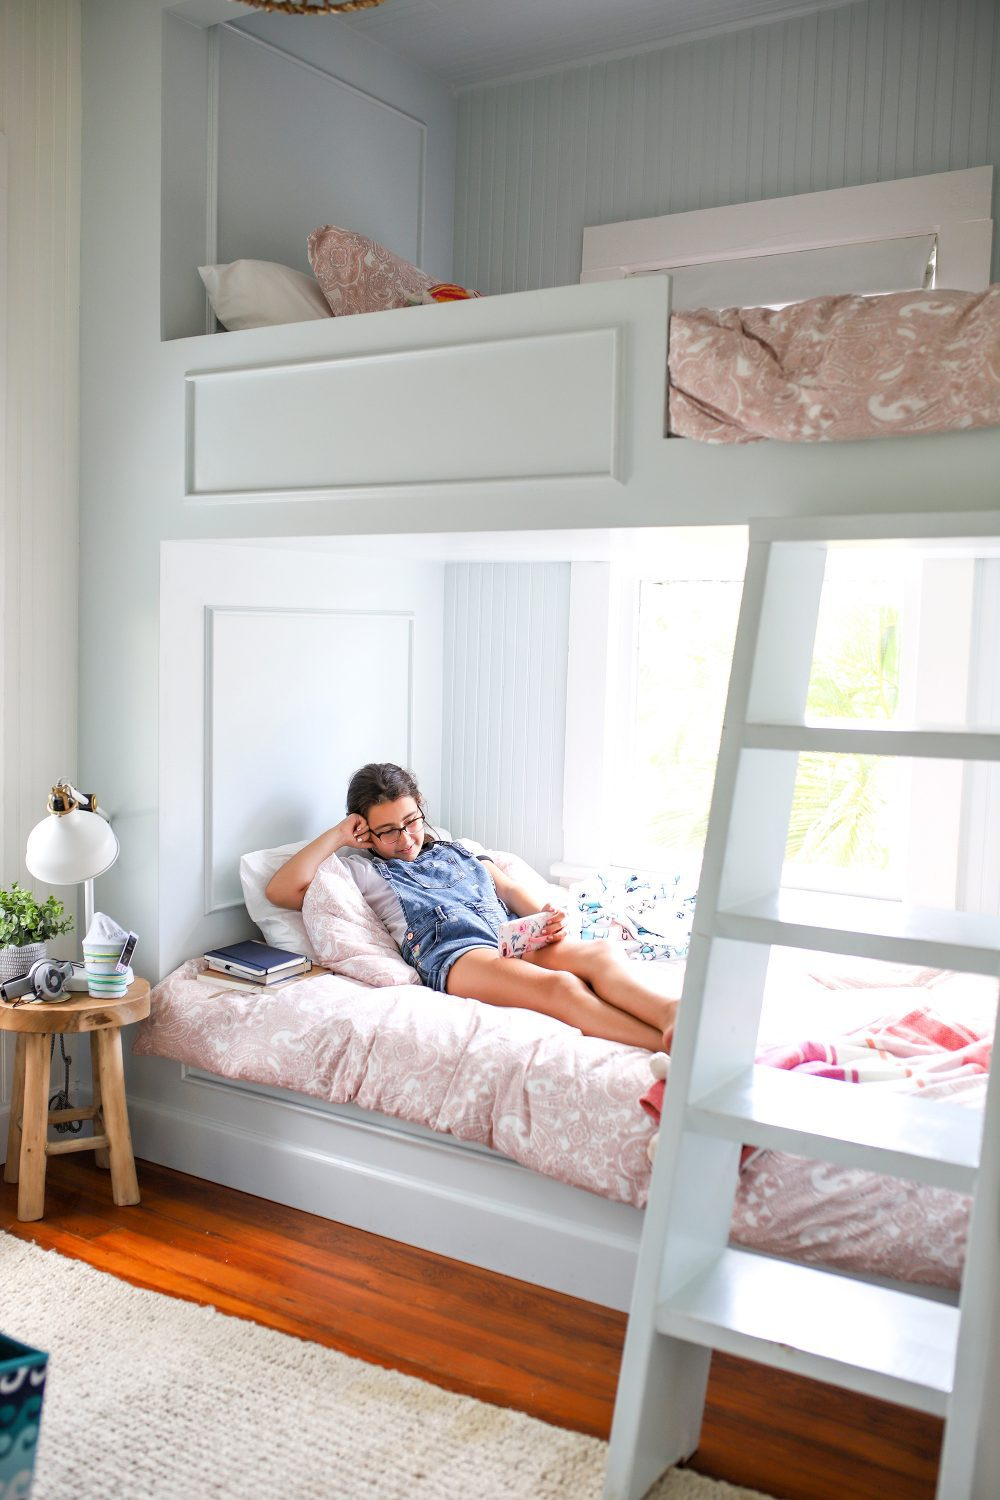 Built in bunk beds at an AirBnB